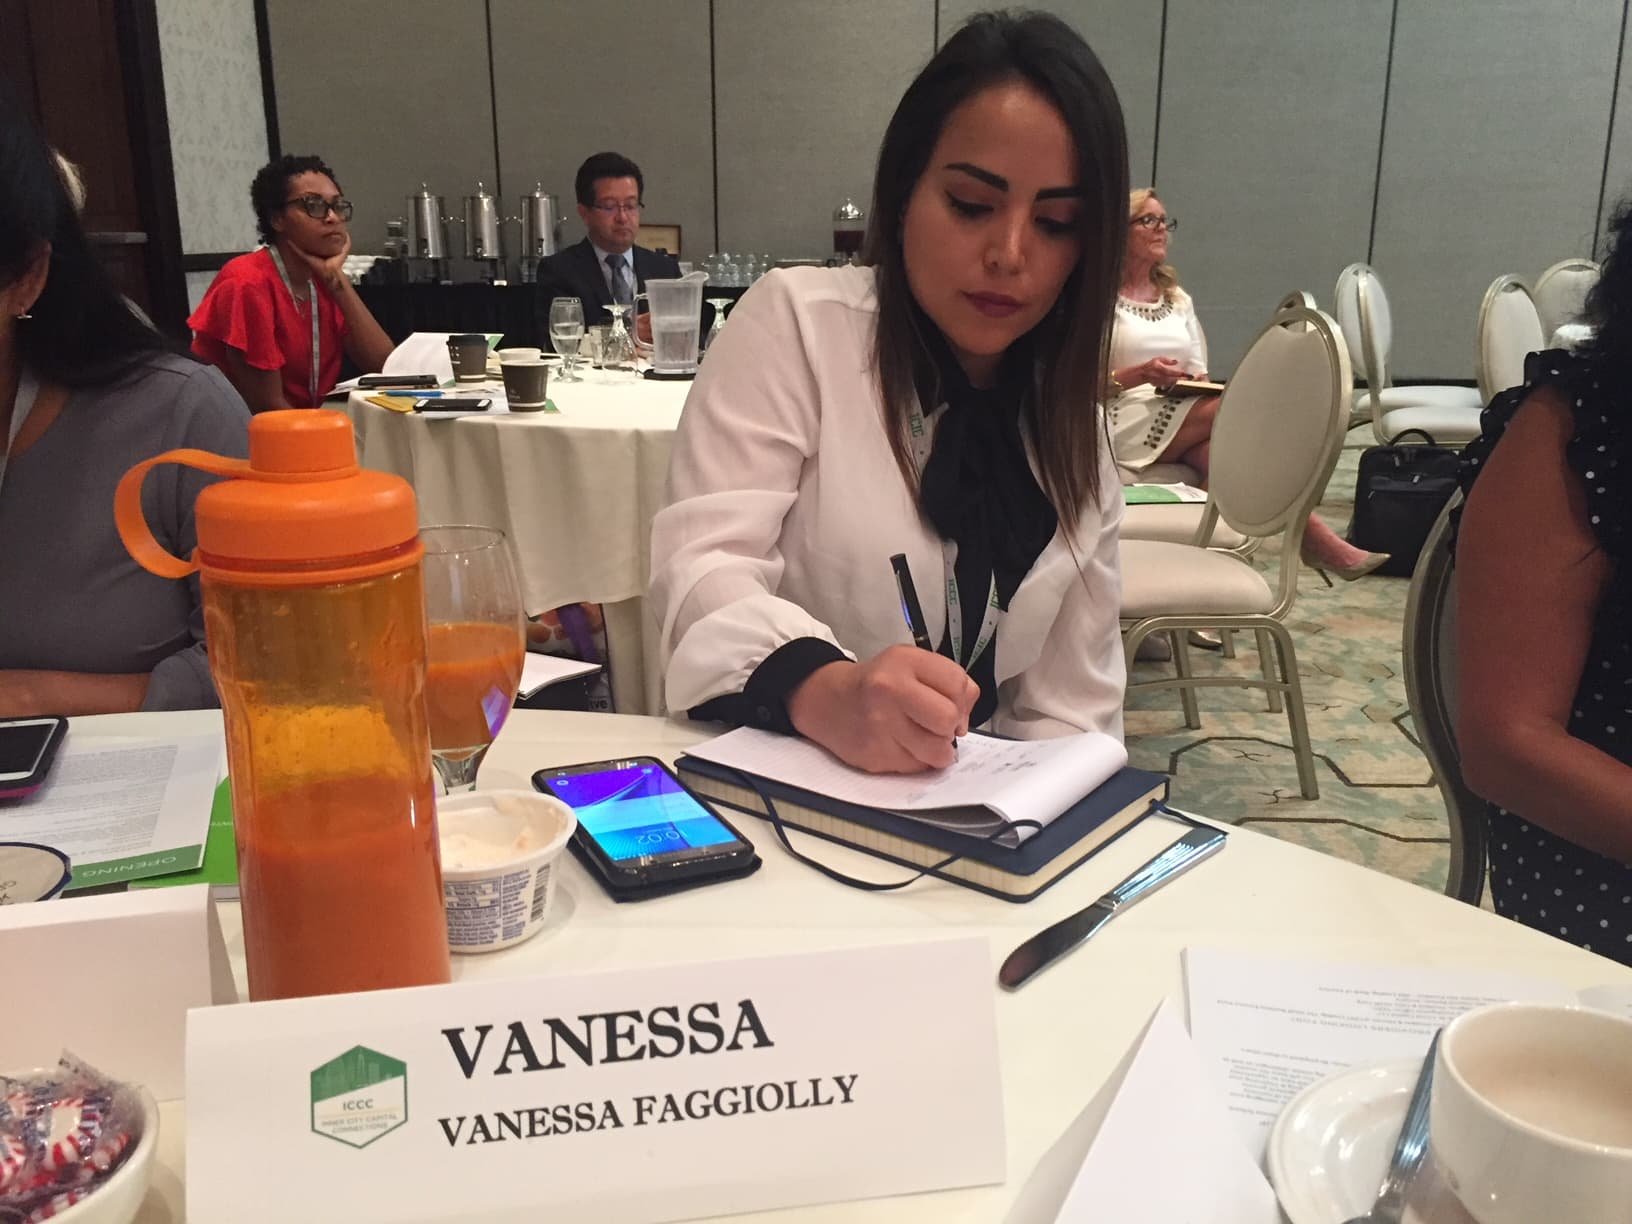 Vanessa Faggiolly sitting at a table with notes.